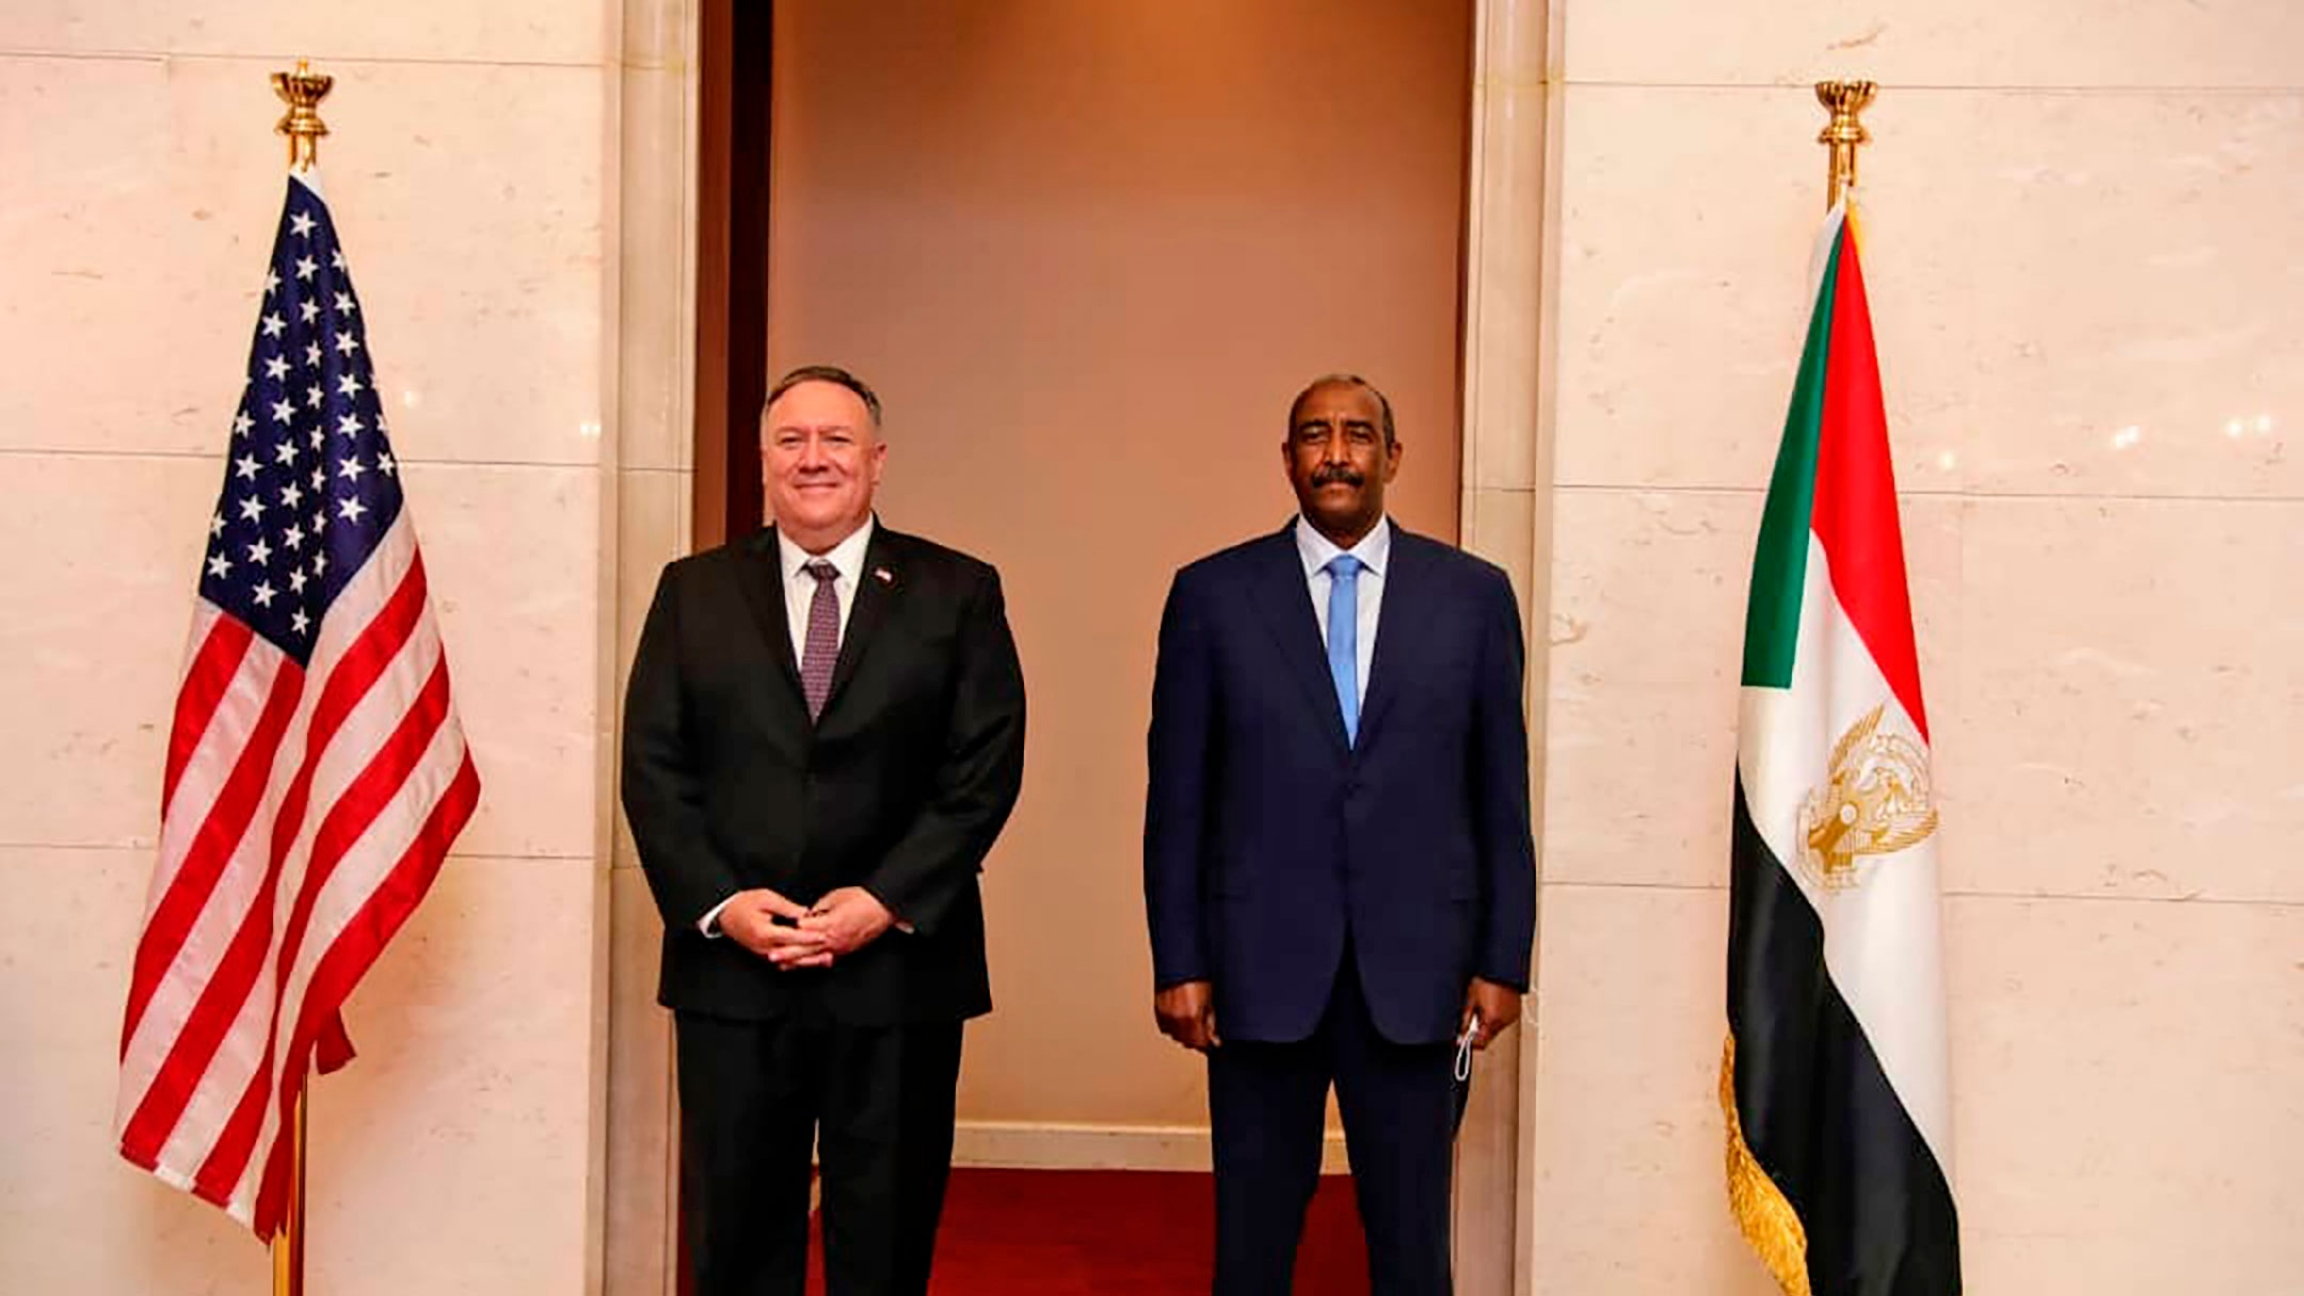 US Secretary of State Mike Pompeo is shown standing with Sudanese Gen. Abdel-Fattah Burhan with the US and Sudanese flags on either side.